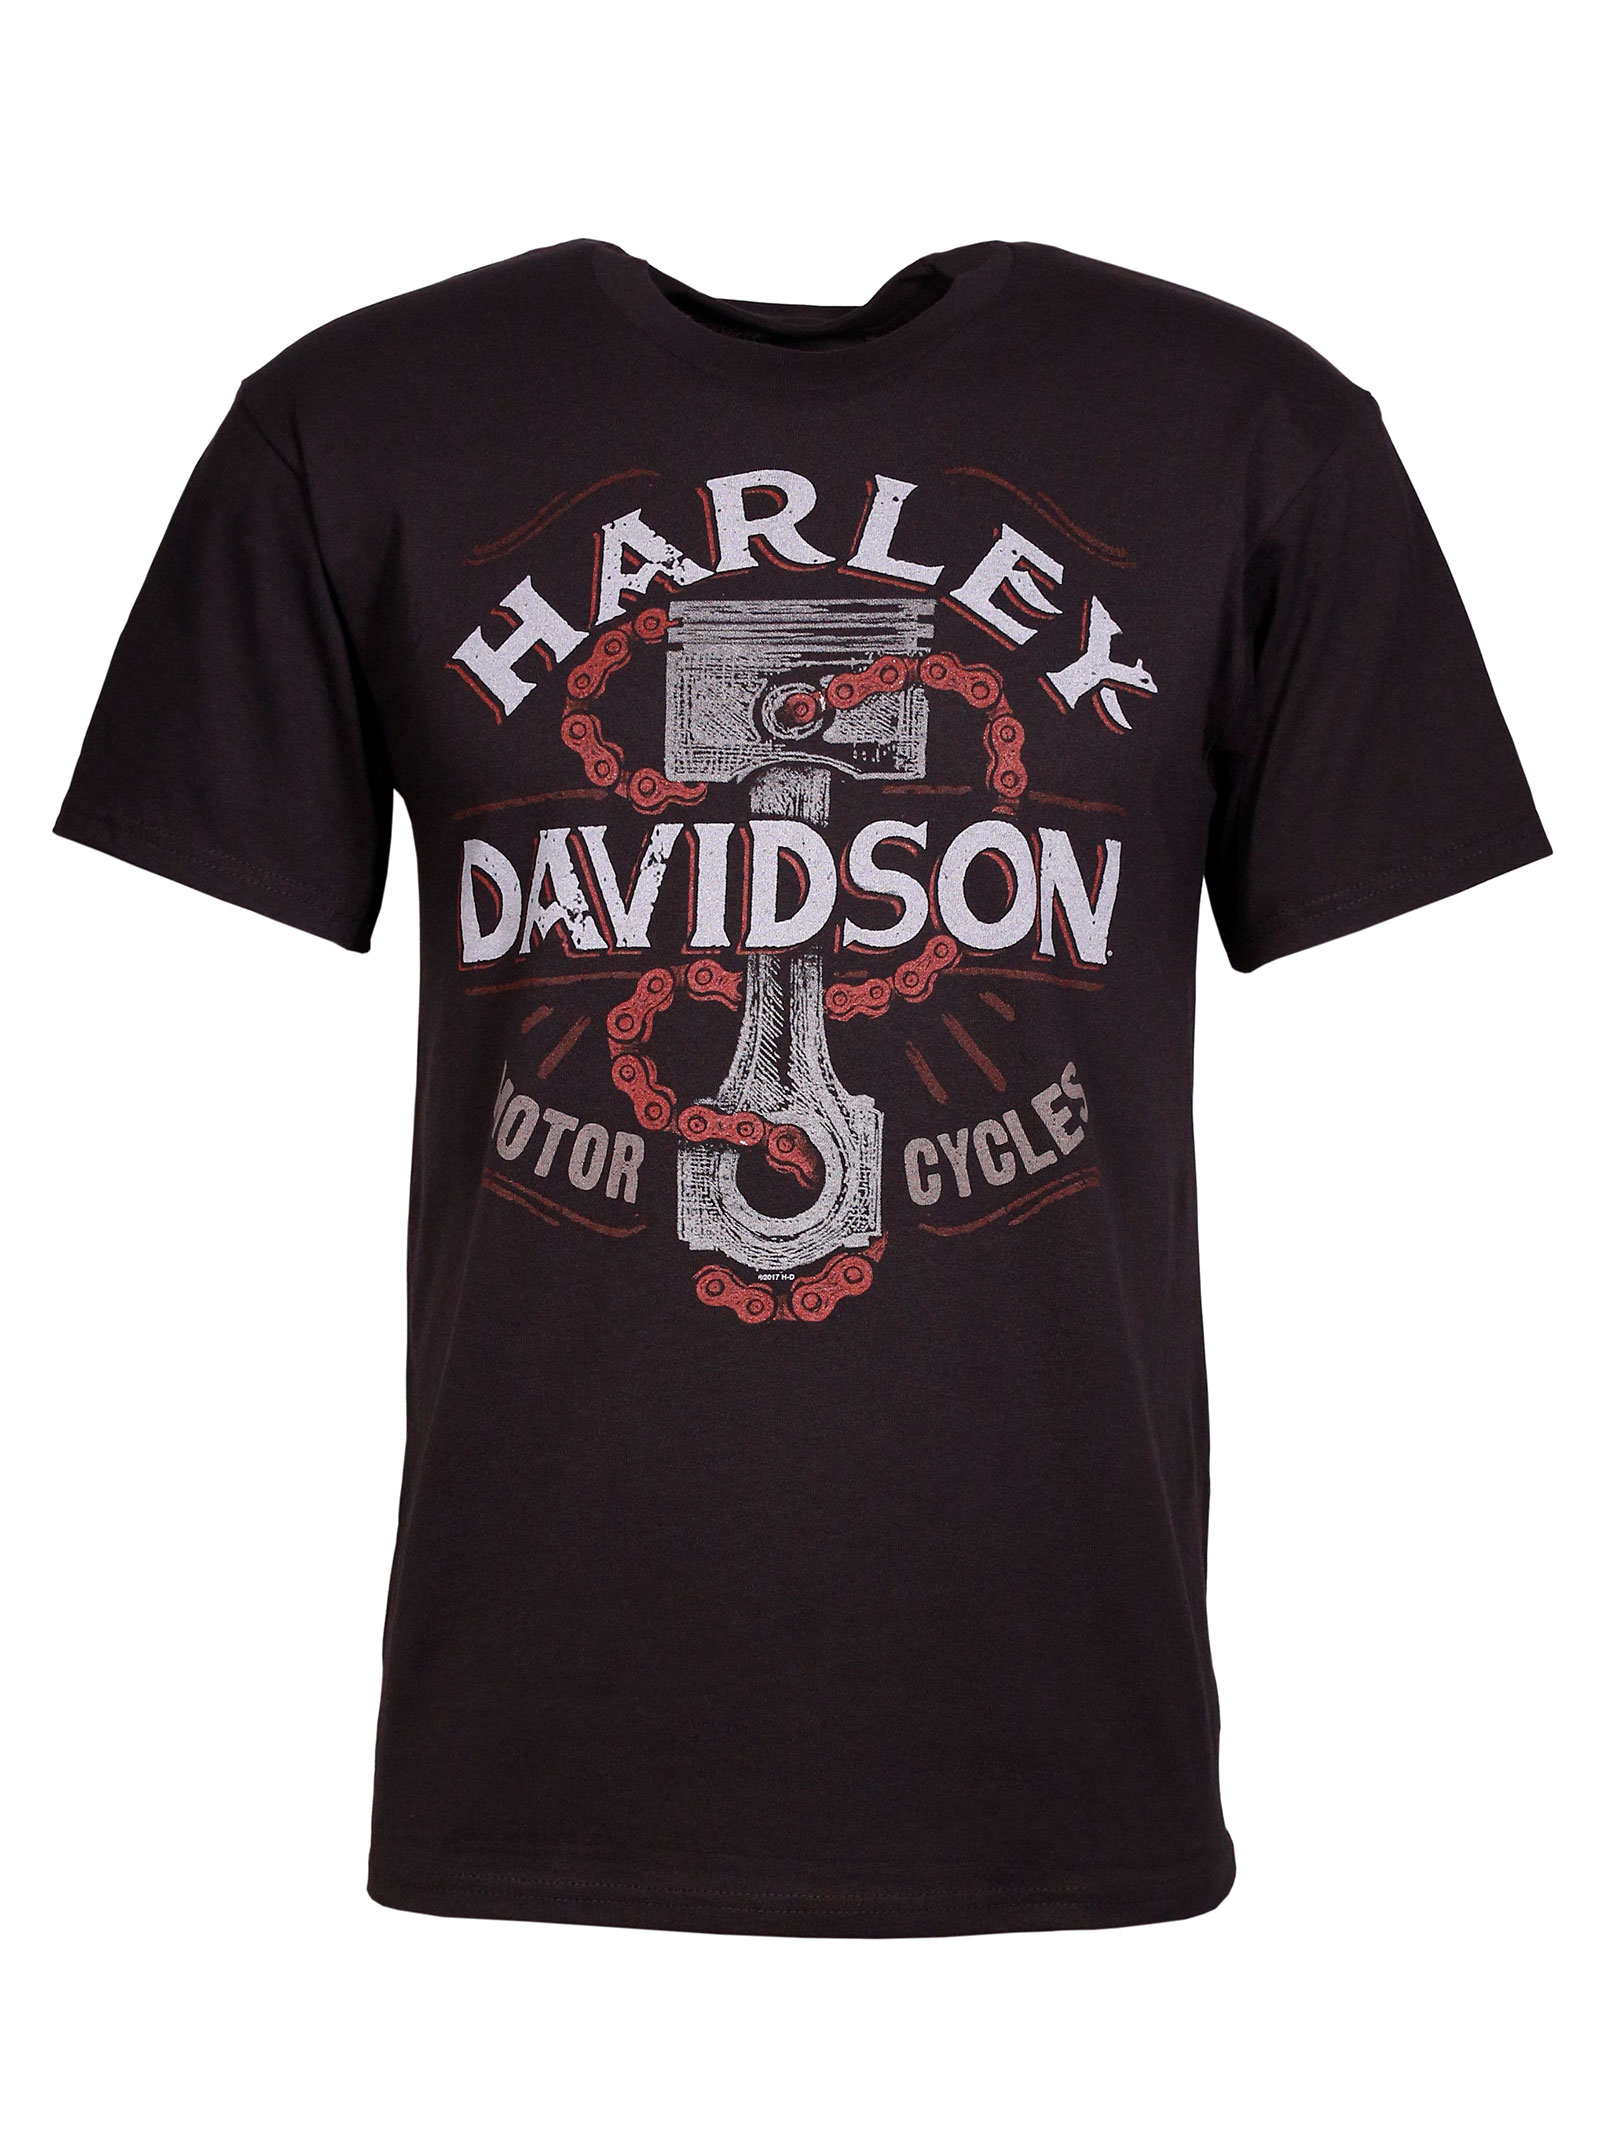 harley davidson t shirt dirt track im thunderbike shop. Black Bedroom Furniture Sets. Home Design Ideas